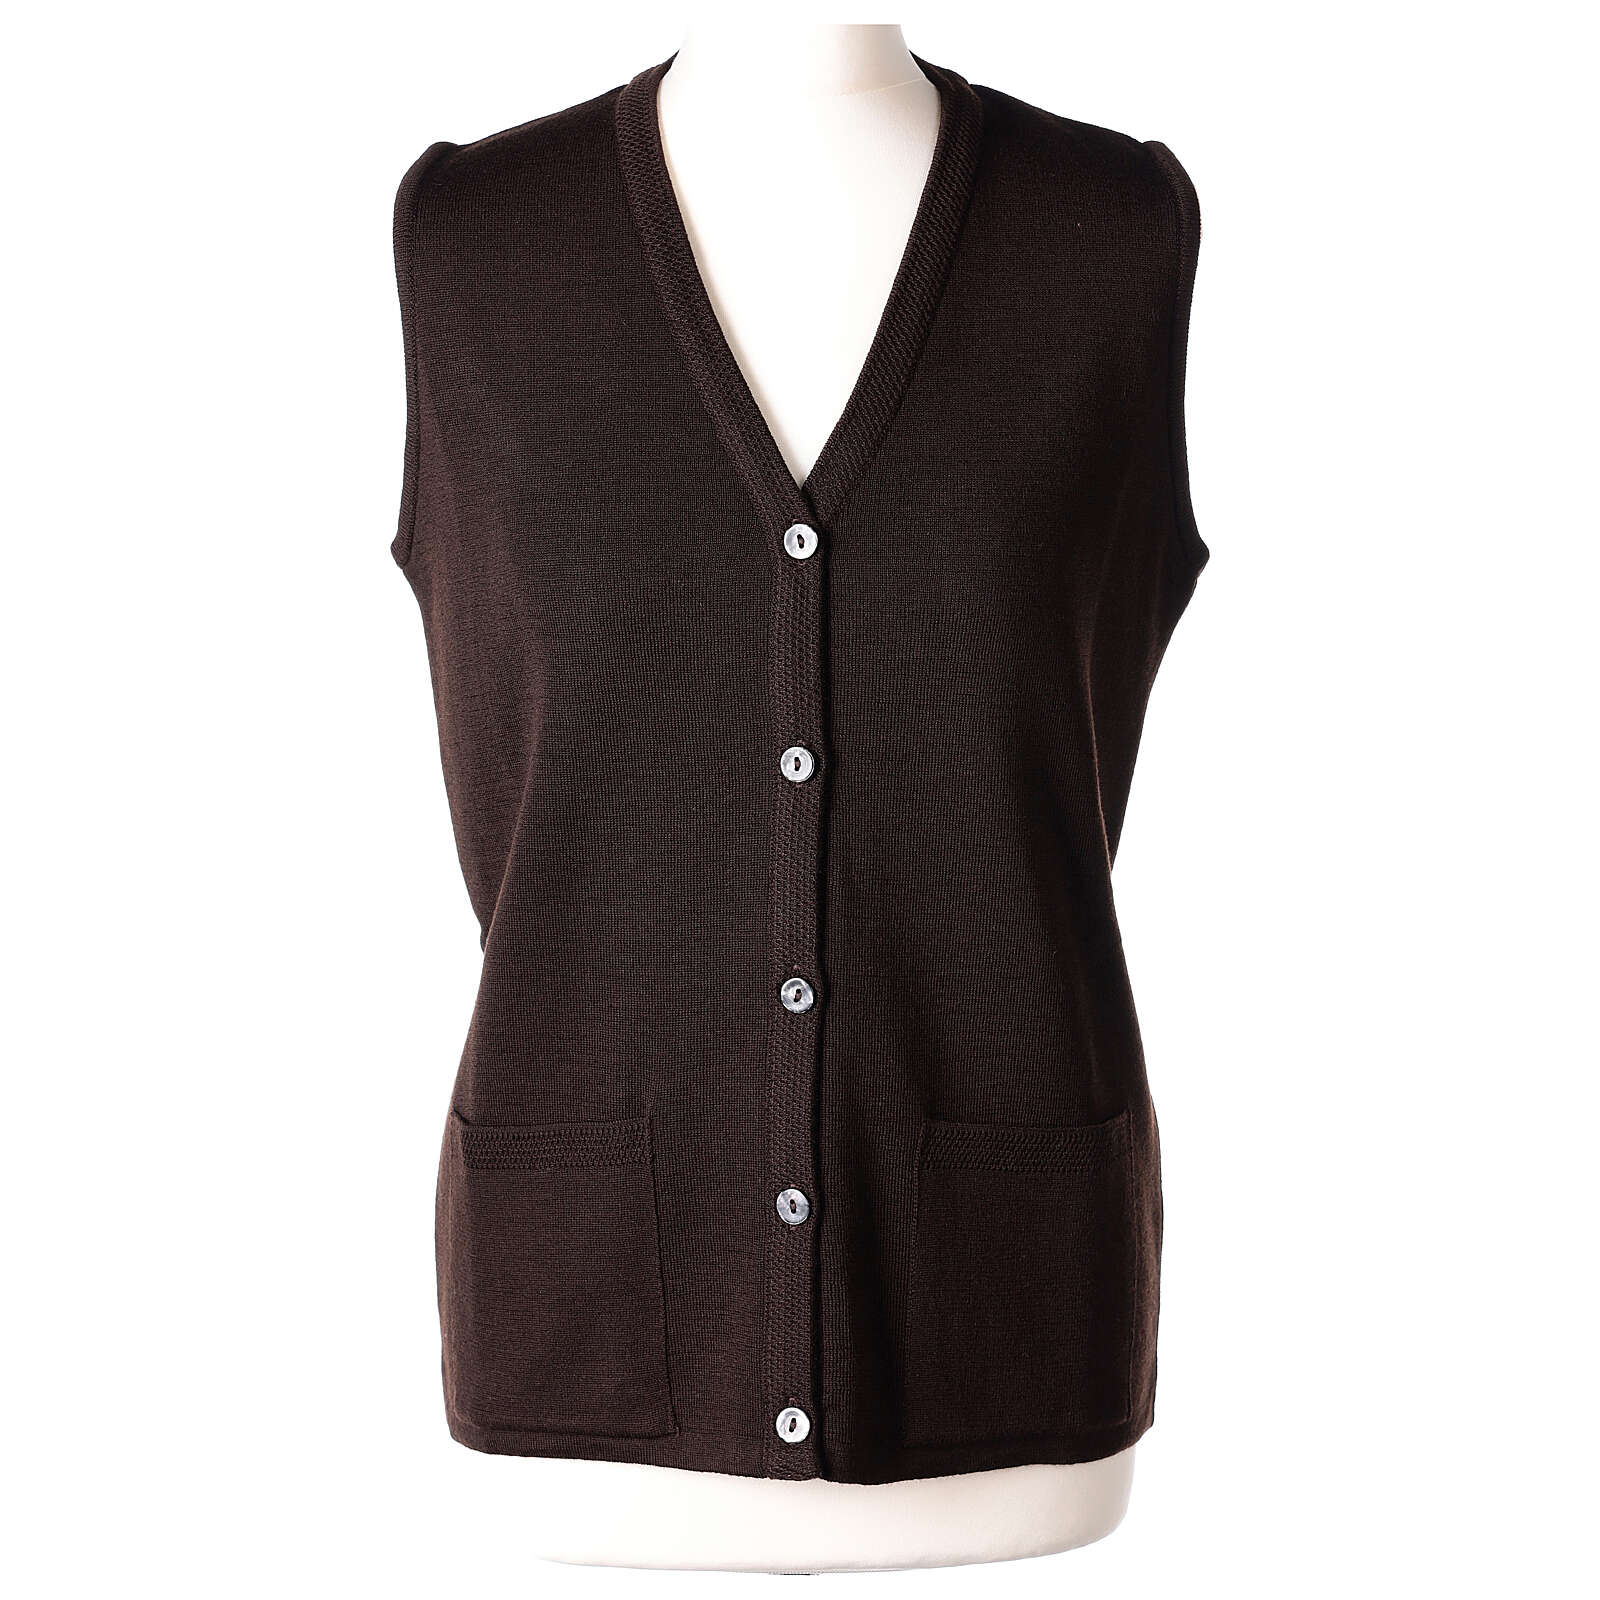 Brown V-neck sleeveless nun cardigan with pockets 50% acrylic 50% merino wool In Primis 4